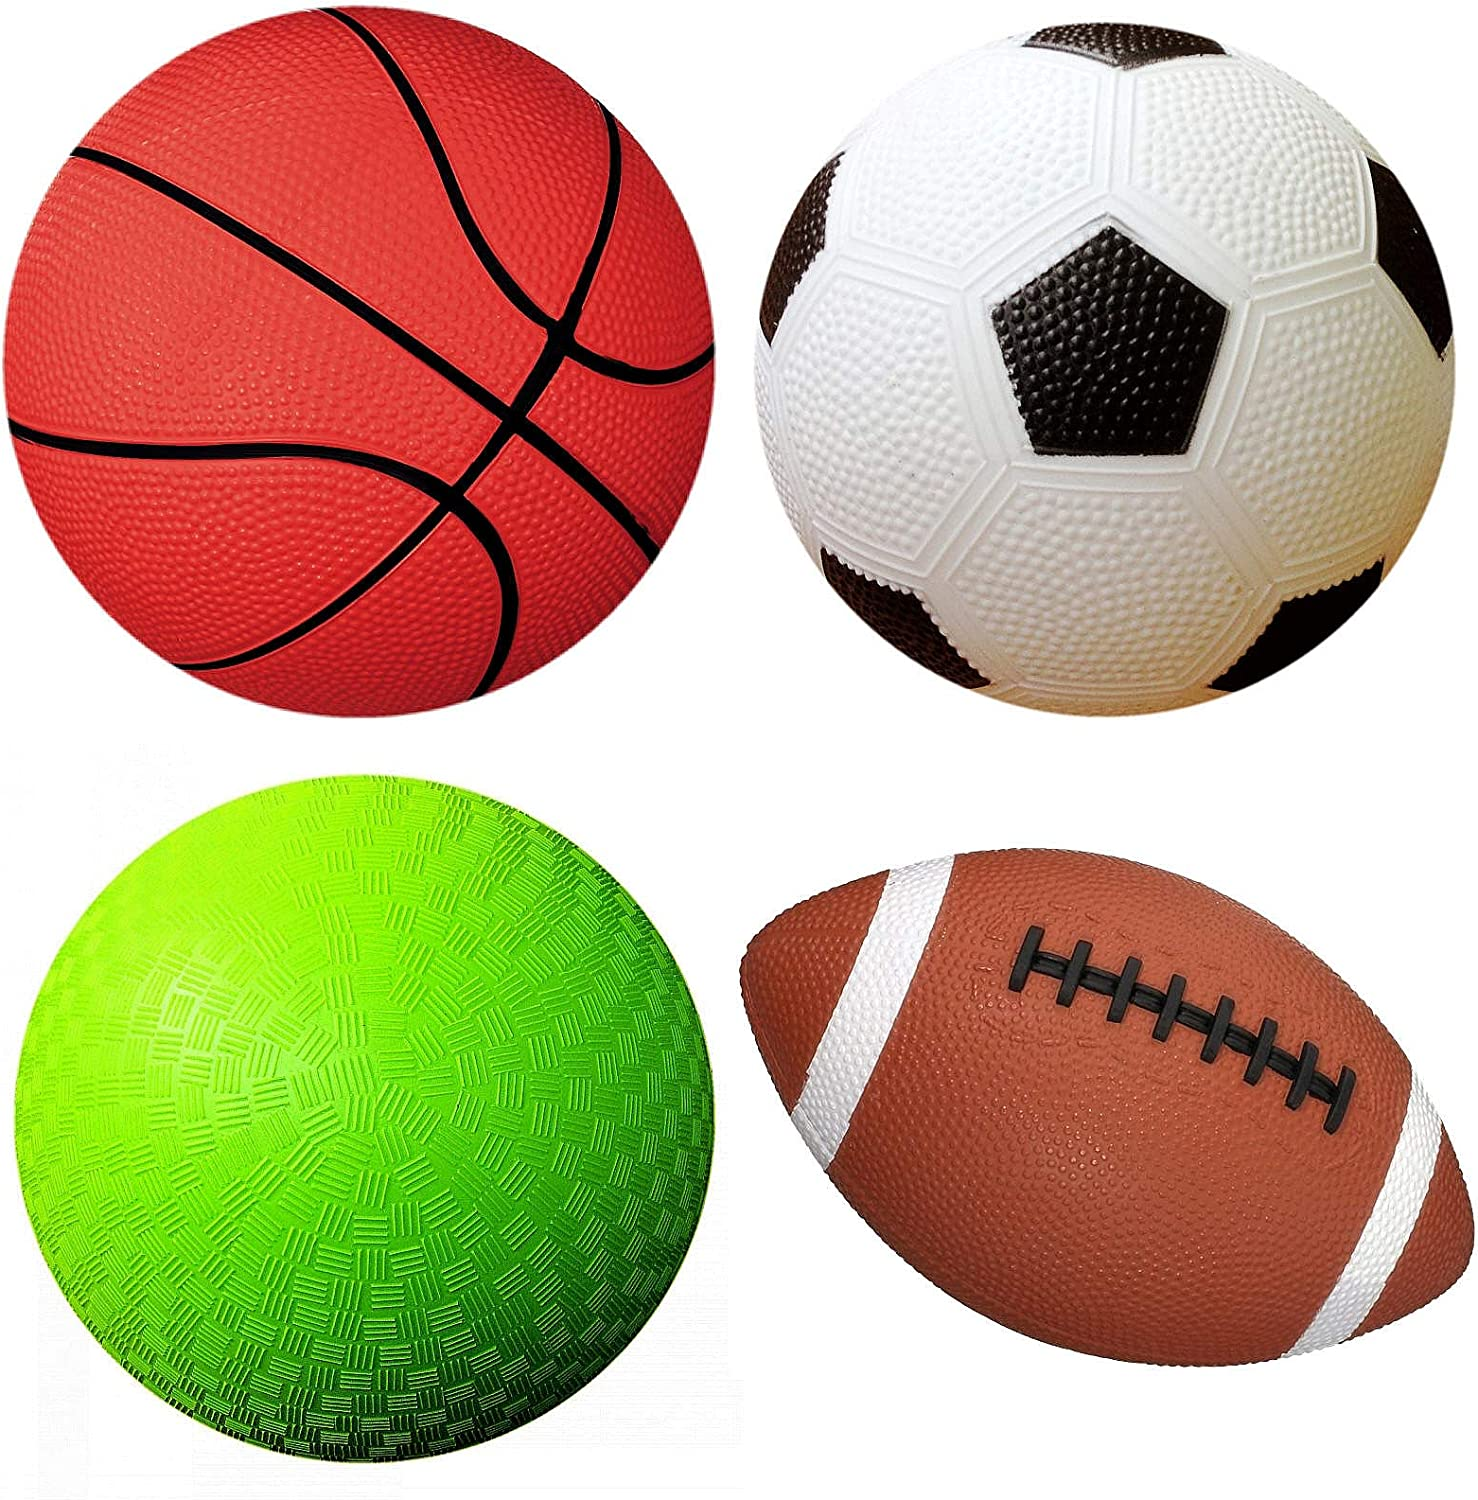 Amazon Com Appleround Pack Of 4 Sports Balls With 1 Pump 1 Each Of 5 Soccer Ball 5 Basketball 5 Playground Ball And 6 5 Football 1 Pack 4 Balls 1 Pump Sports Outdoors